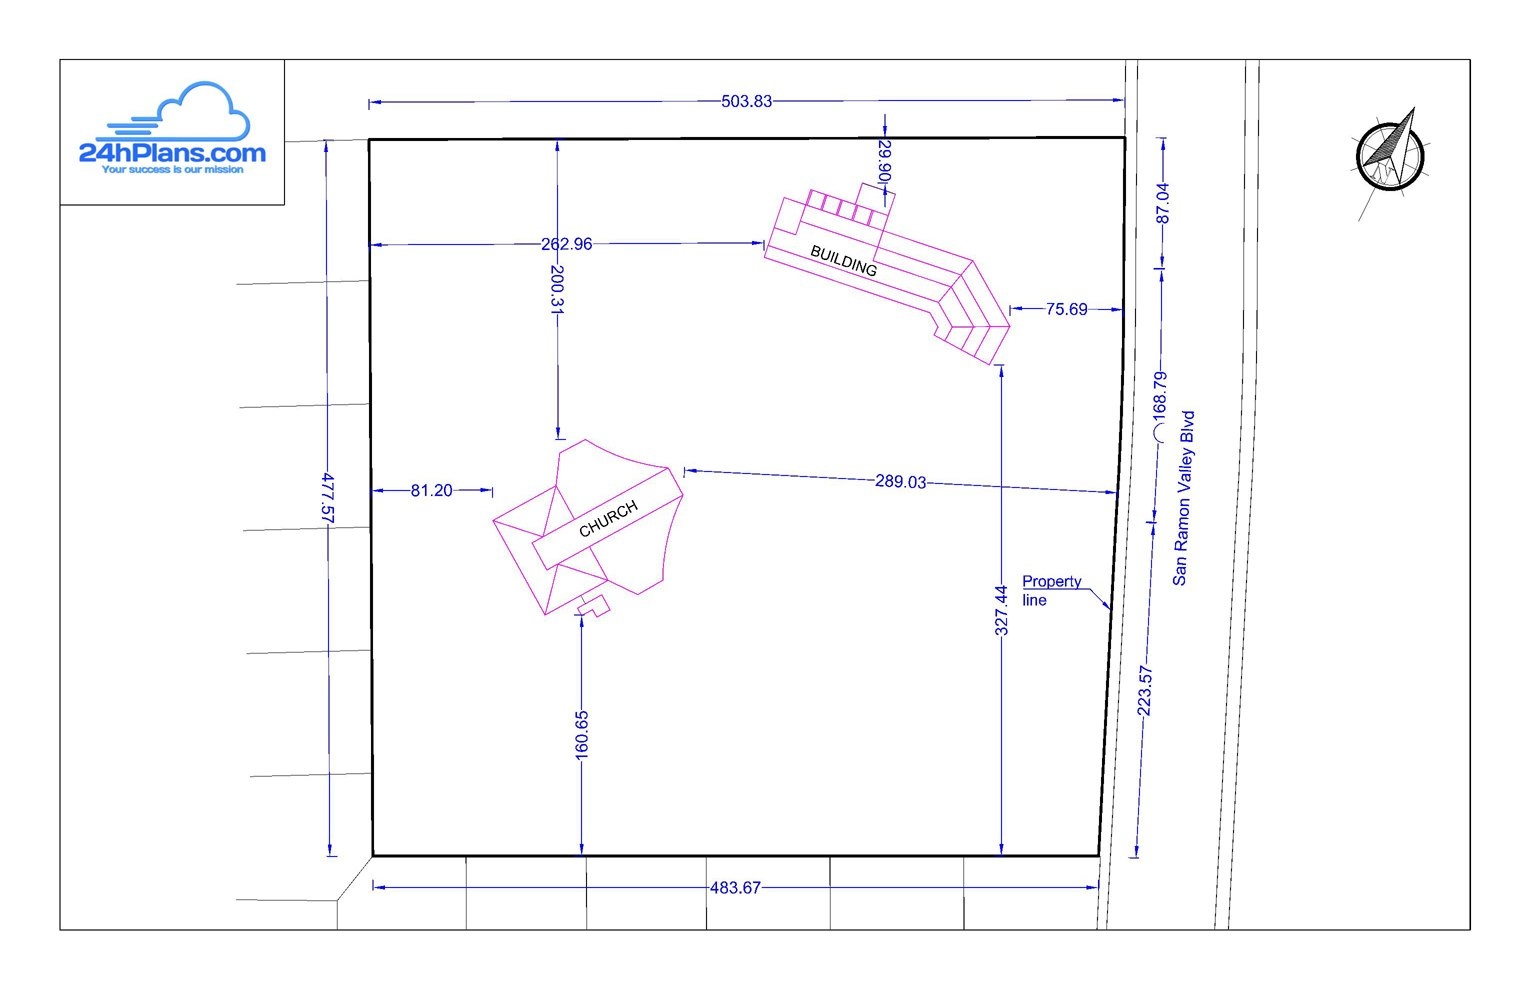 Simple design 24h site plans for building permits site for Home site plan